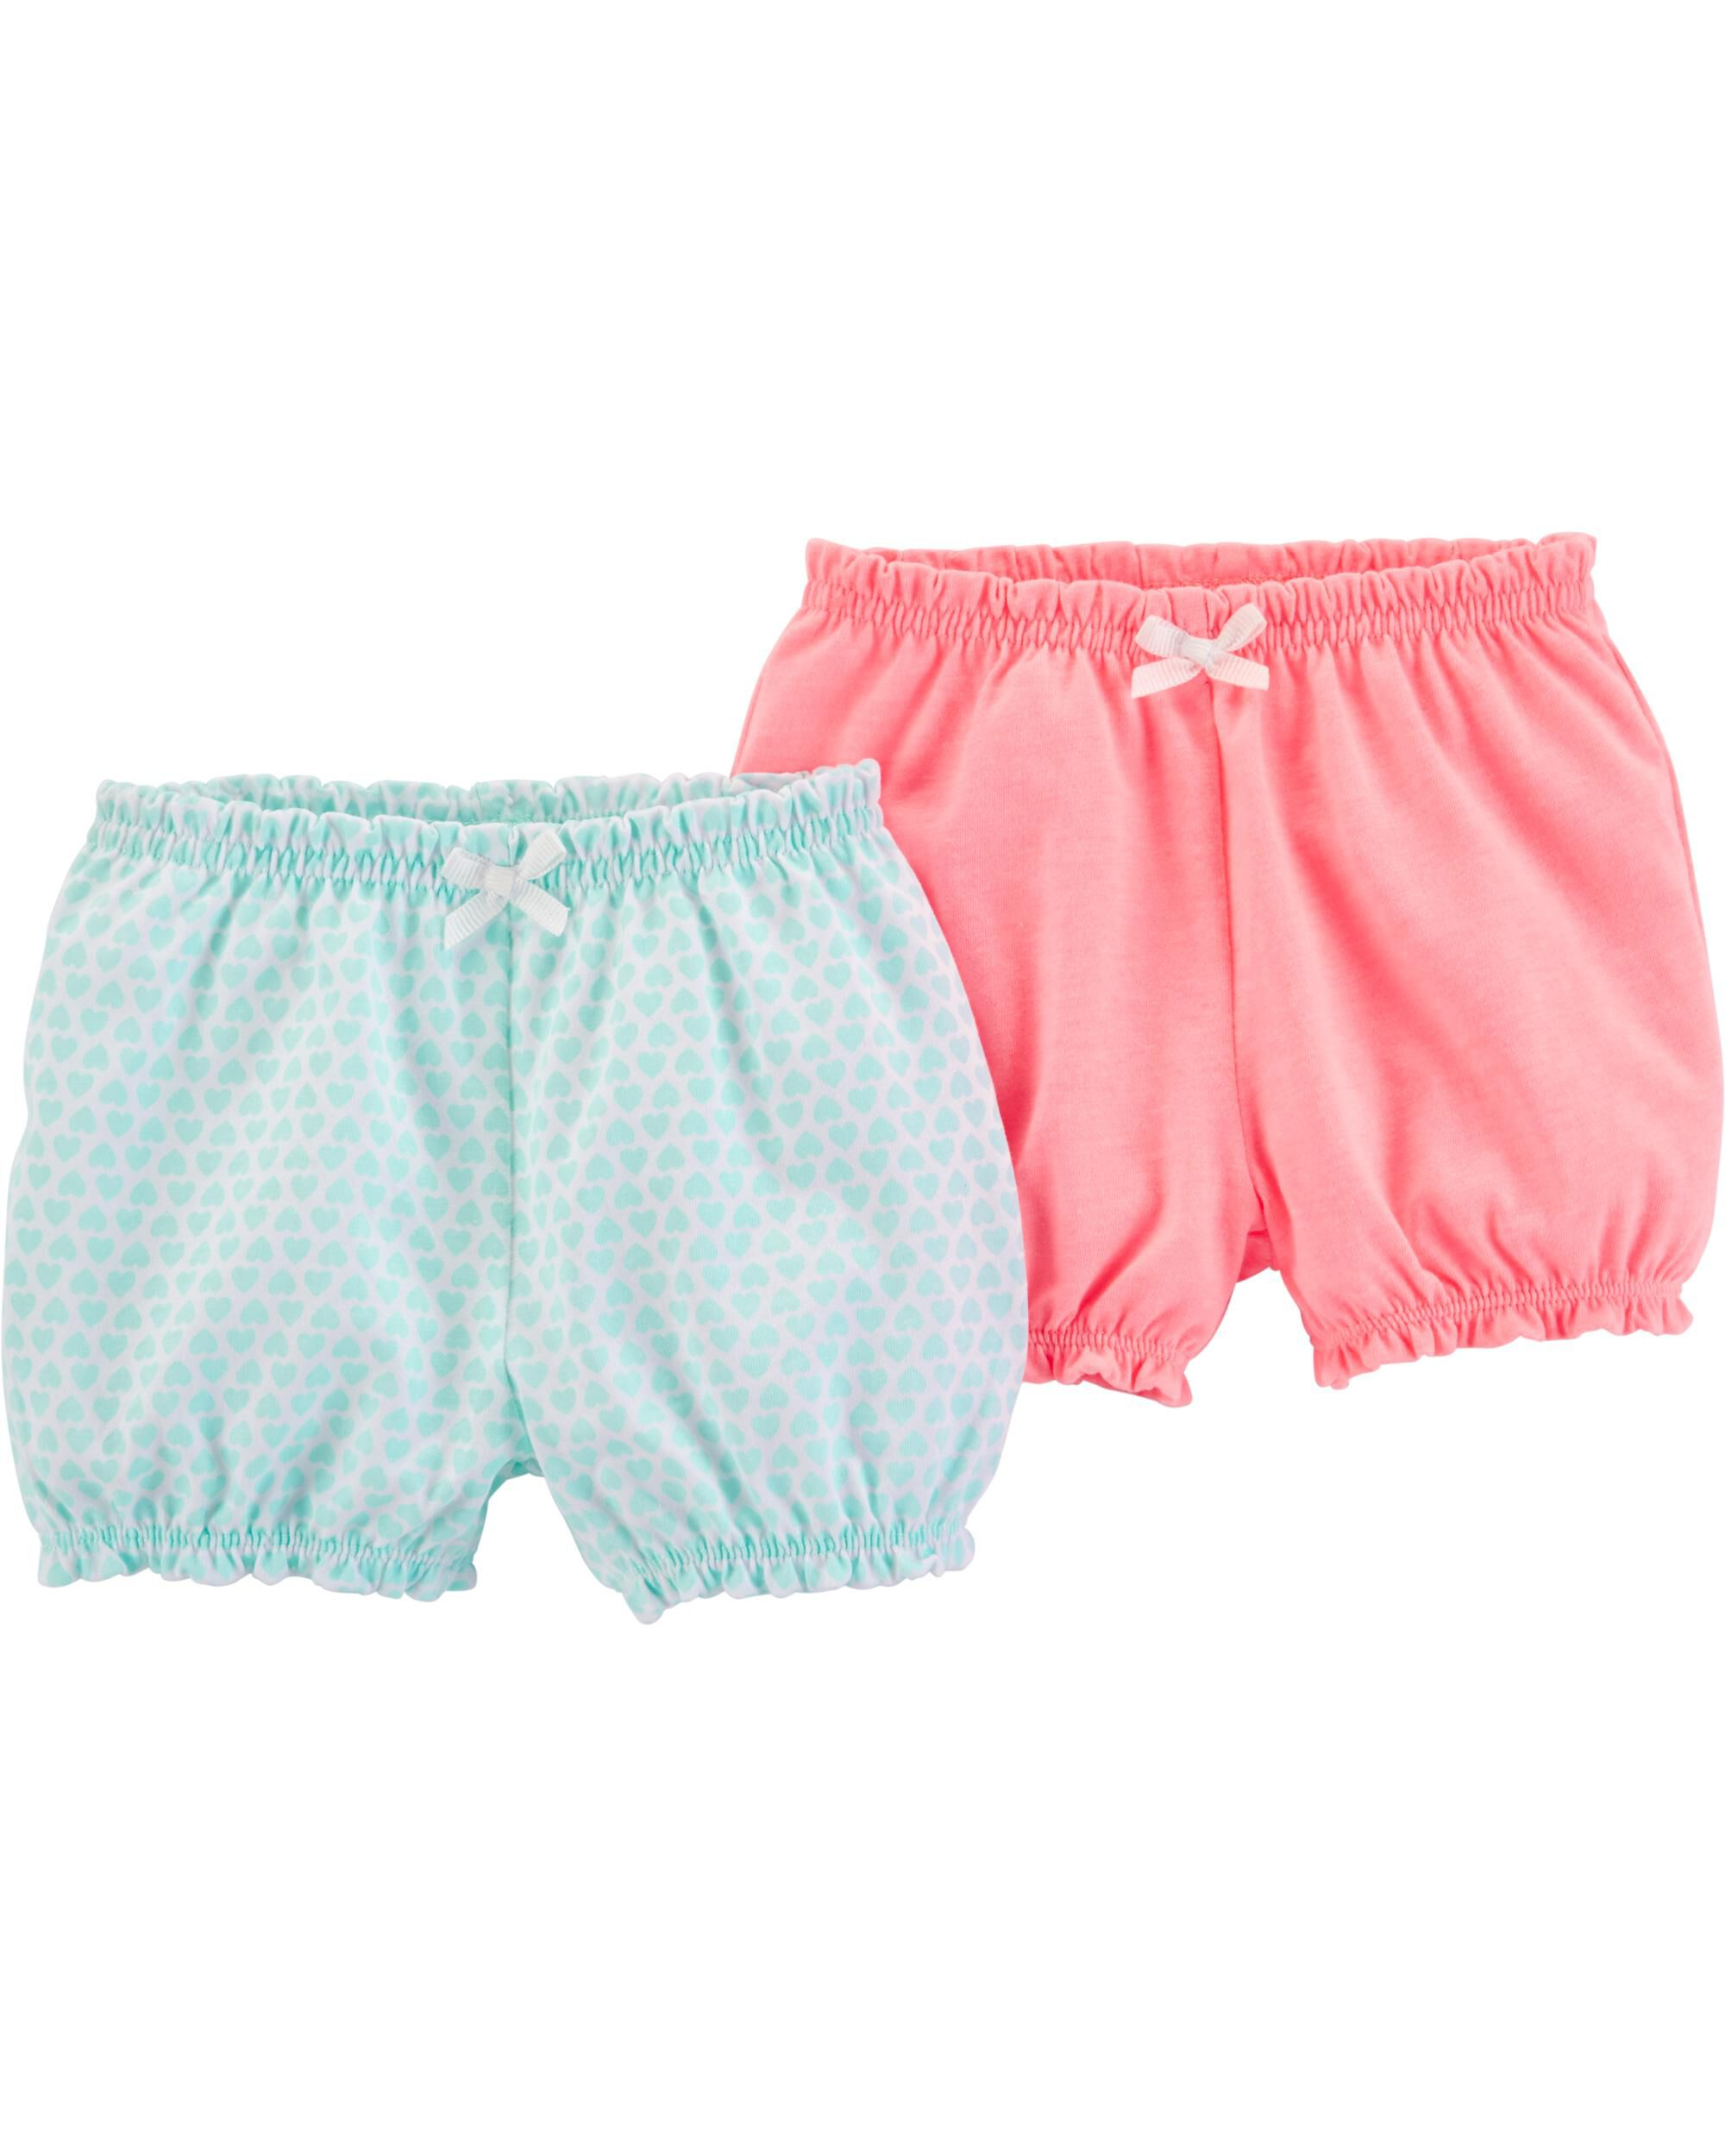 Carters Baby Girls Pull-On Bubble Shorts Cloud Print